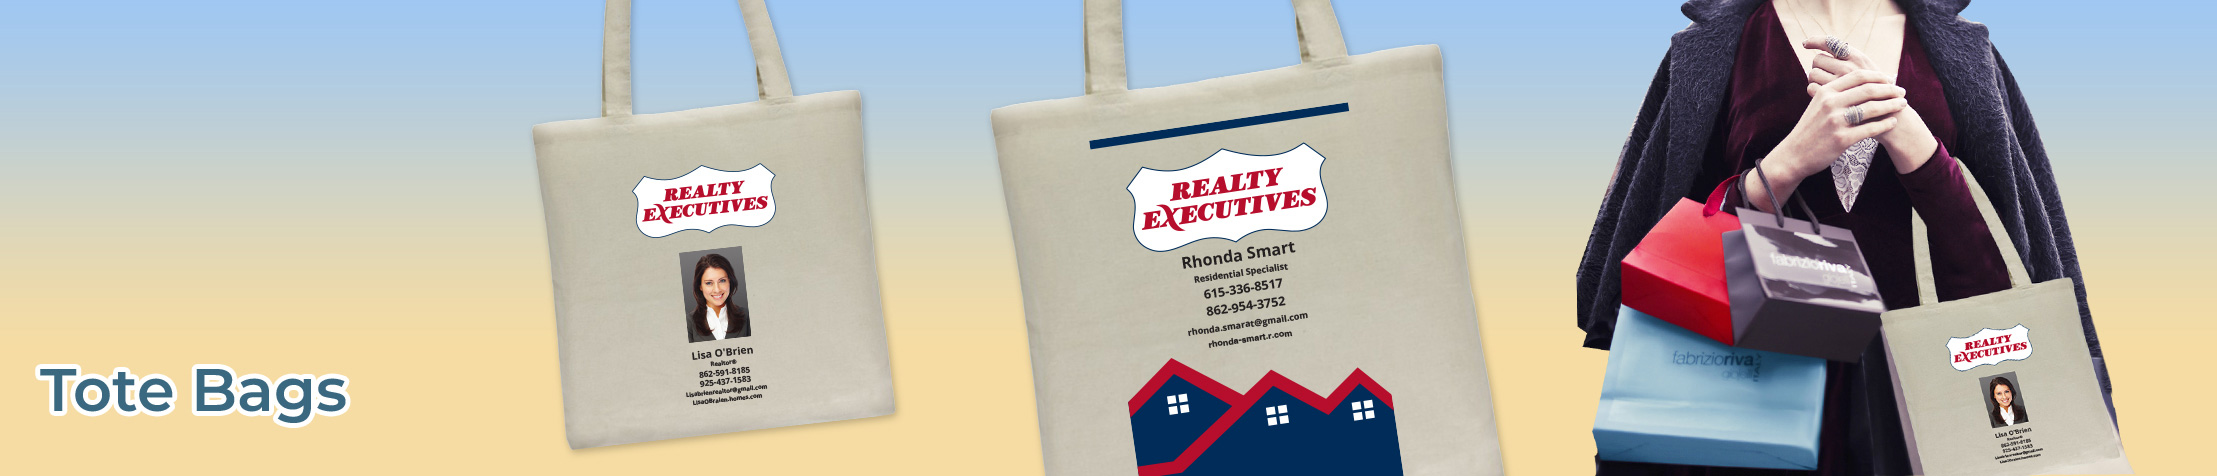 Realty Executives Real Estate Economy Can Cooler - Realty Executives personalized realtor promotional products | BestPrintBuy.com